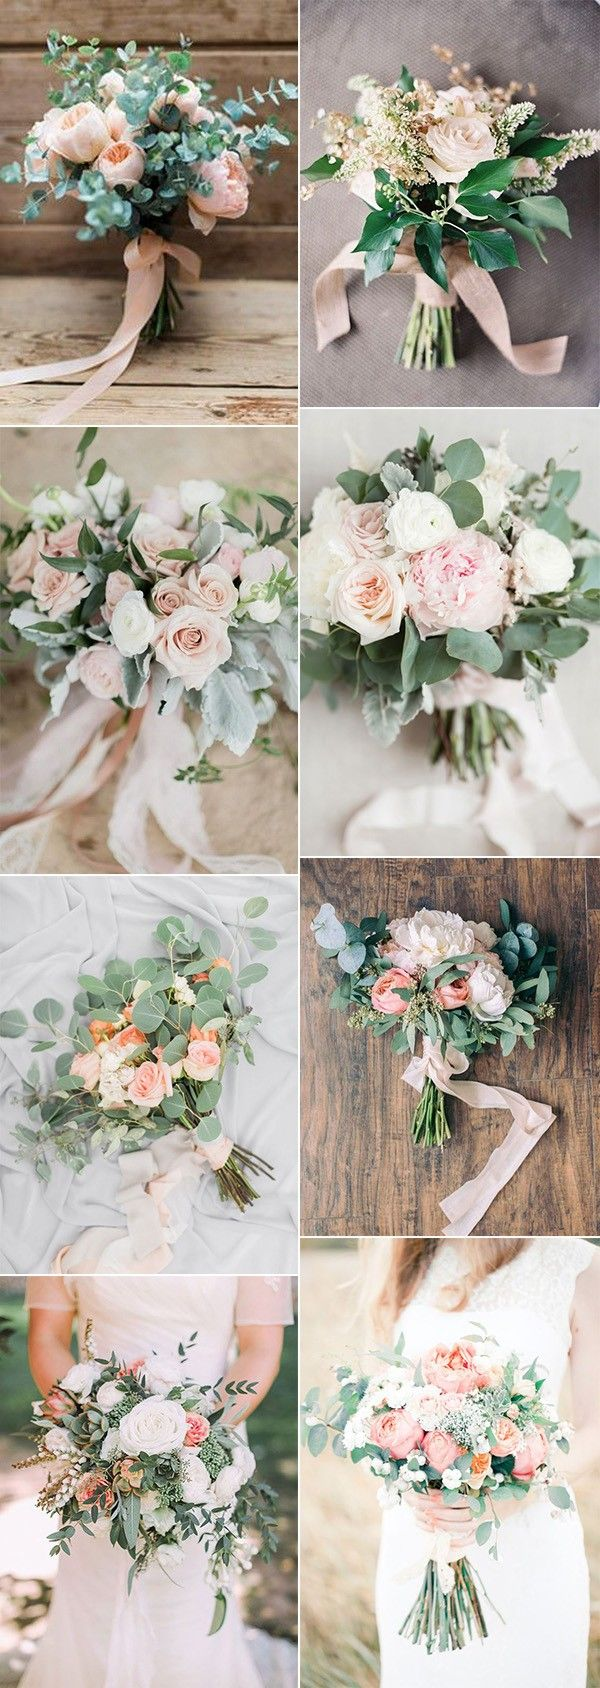 25 Brilliant Wedding Bouquets for Spring/Summer 2019